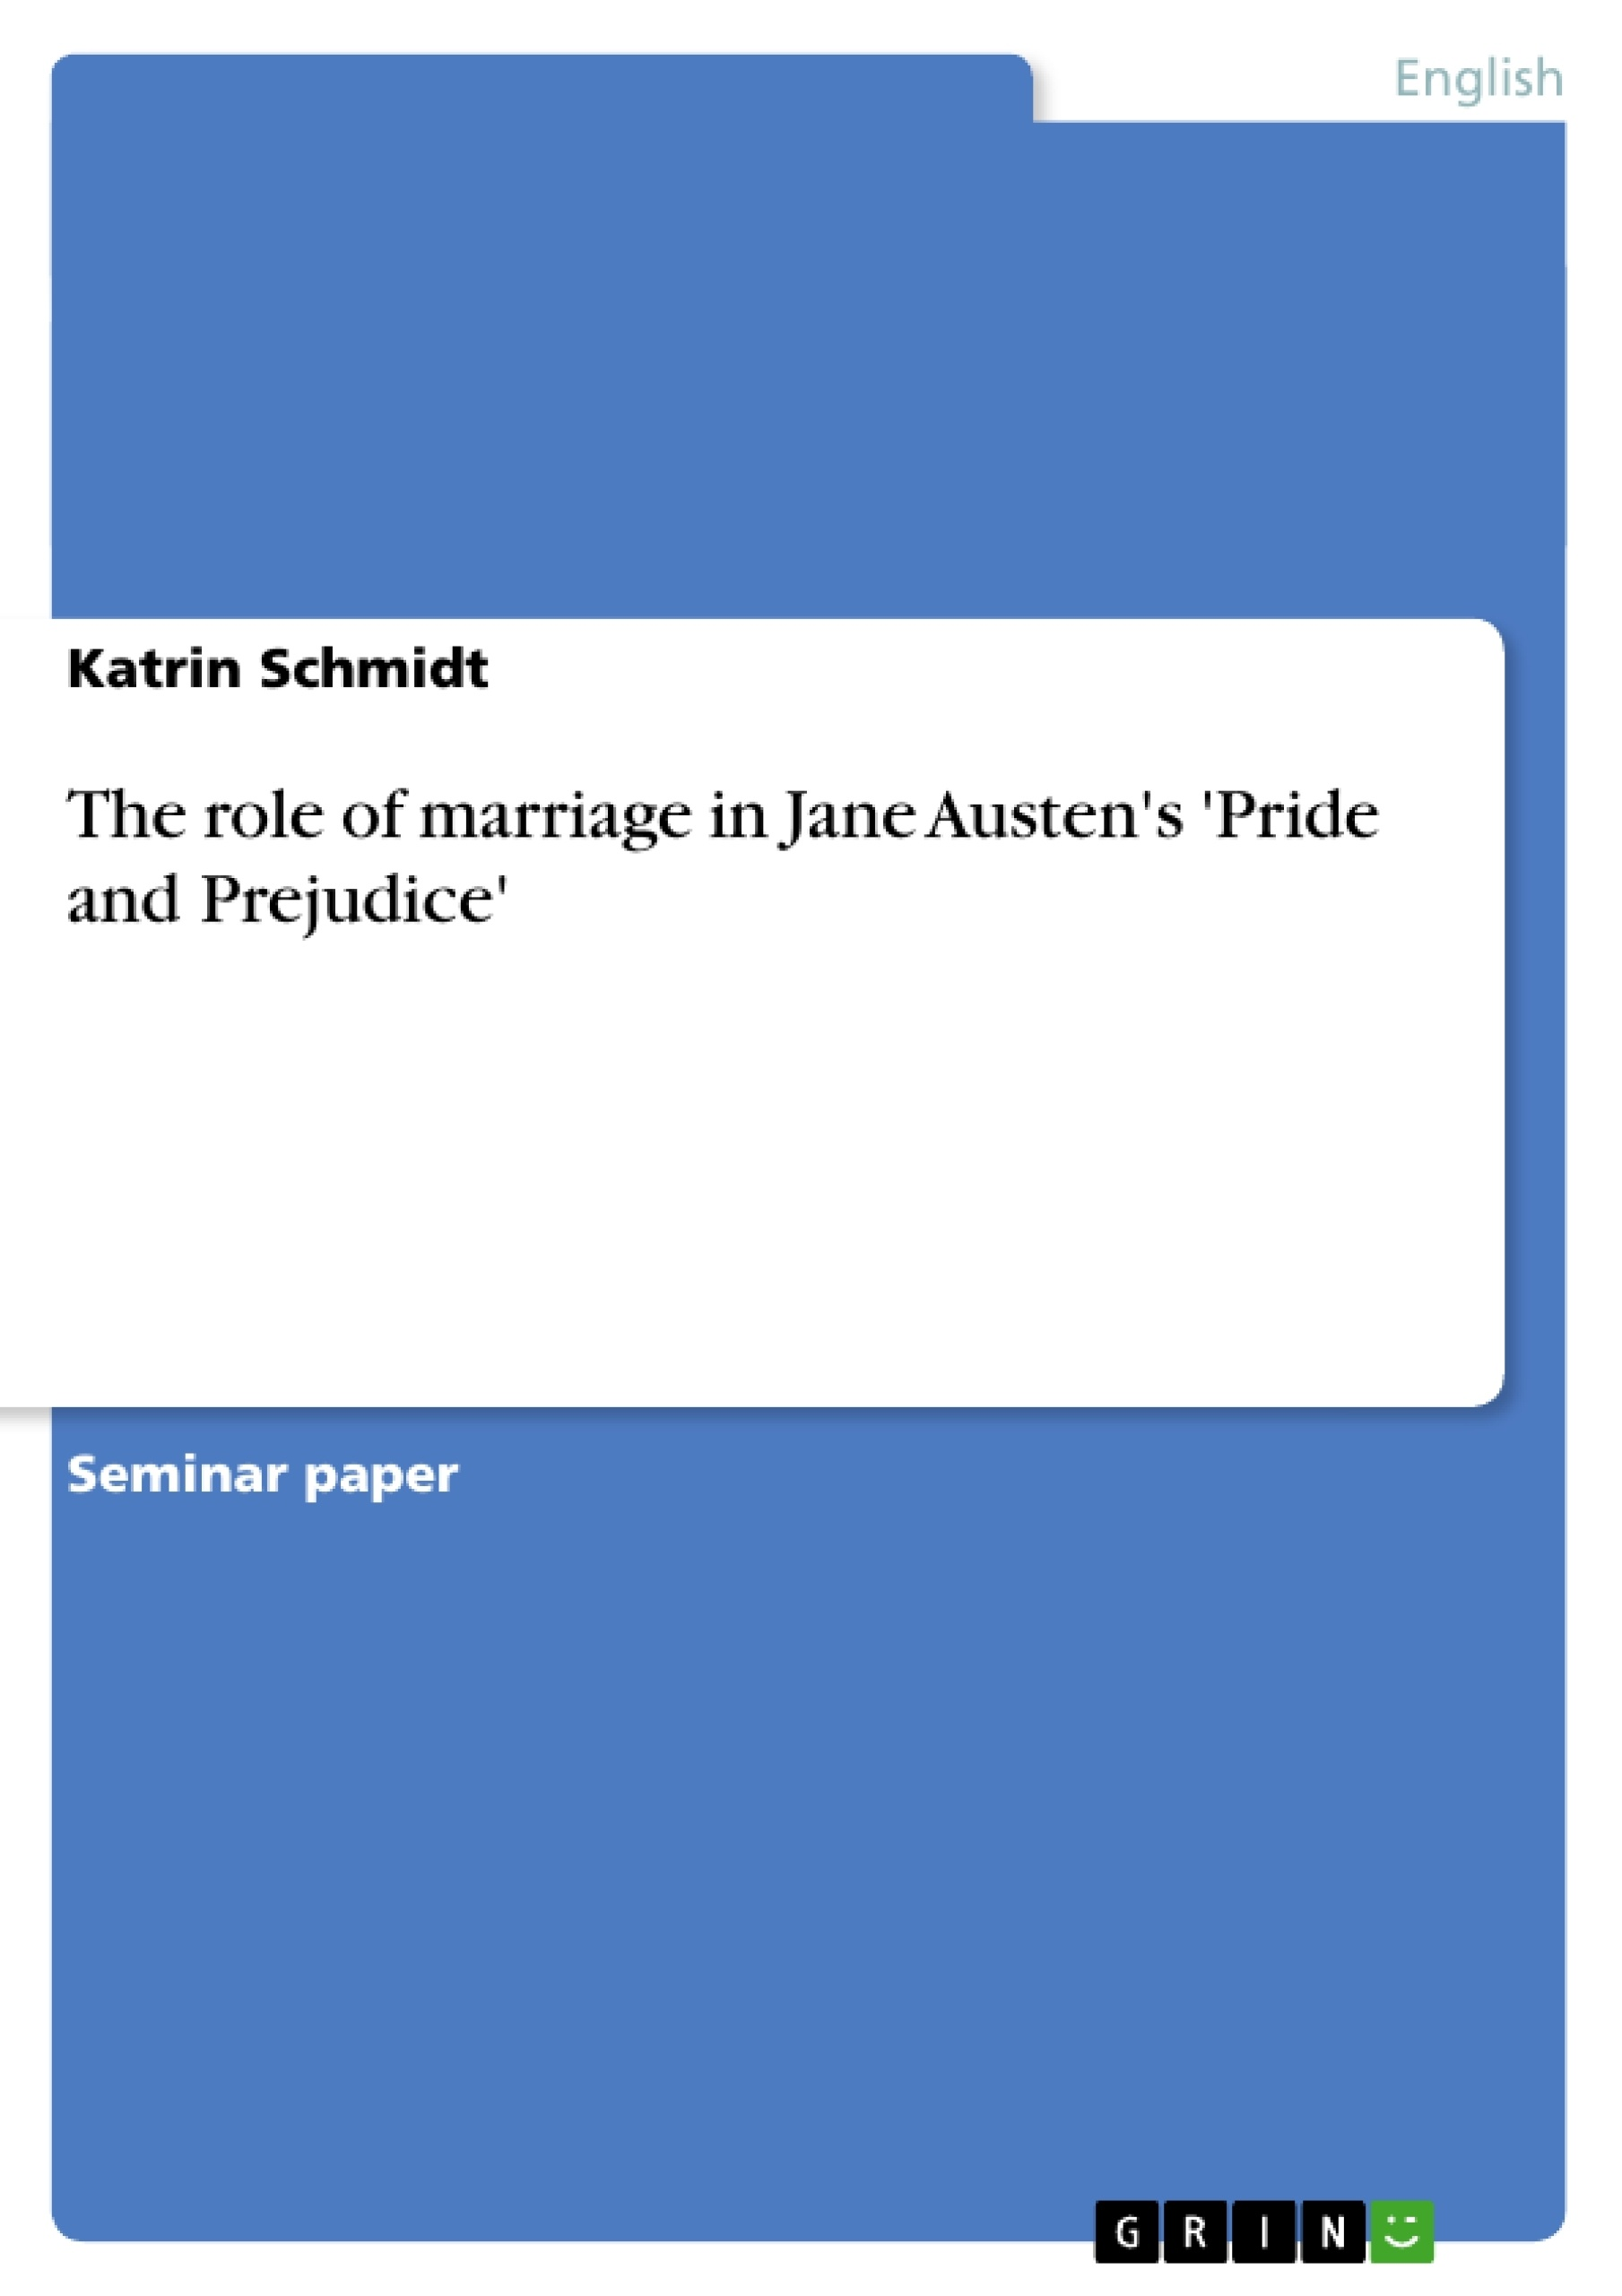 Title: The role of marriage in Jane Austen's 'Pride and Prejudice'